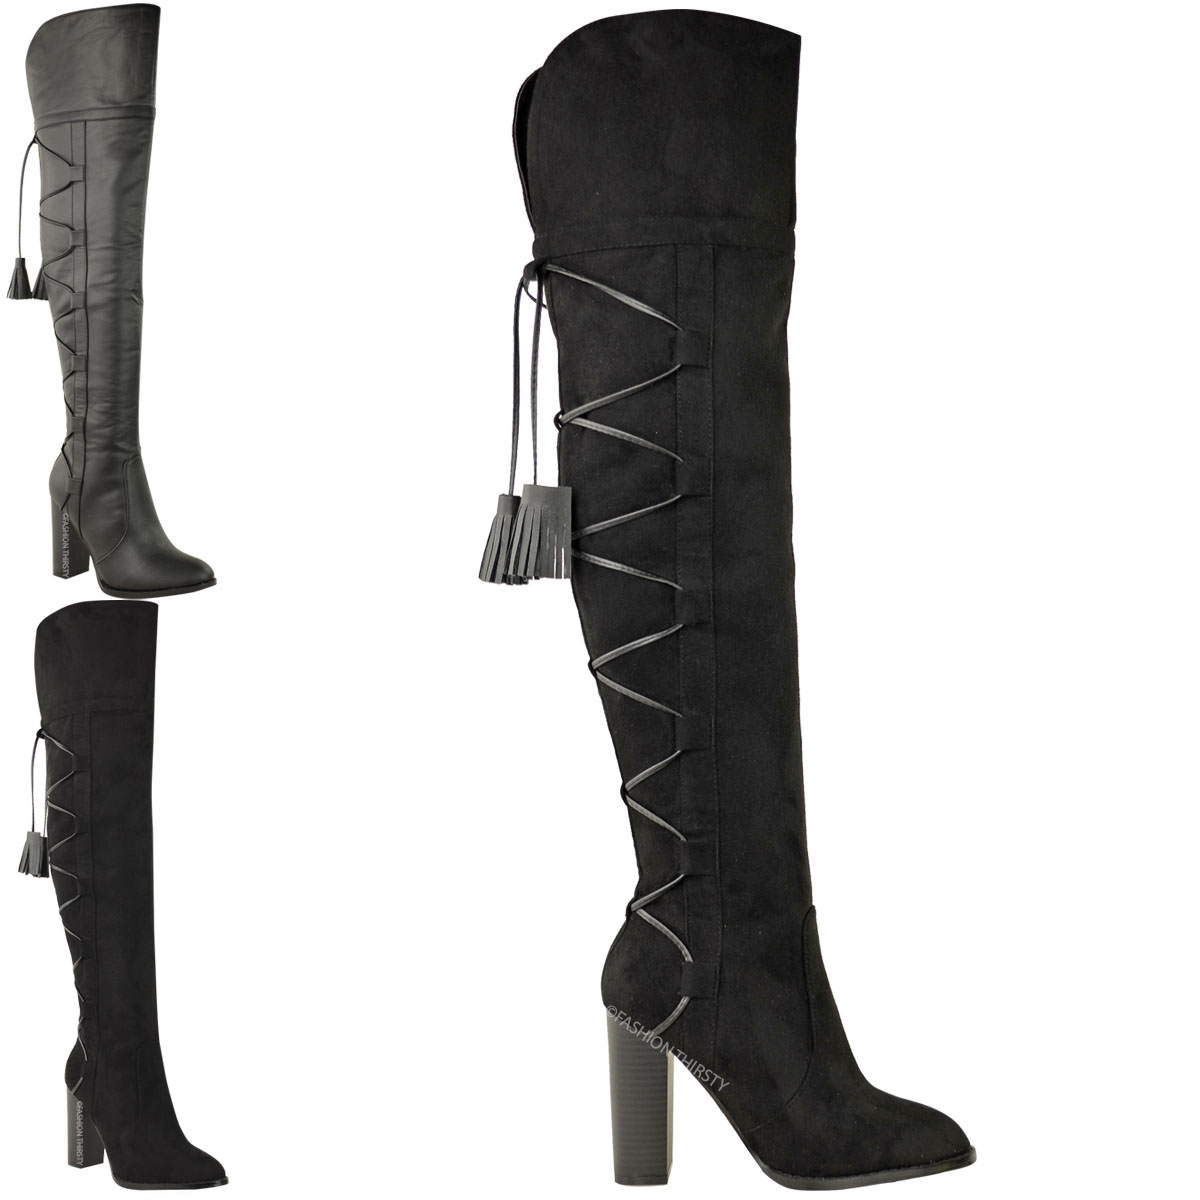 Ladies over knee thigh high riding boots block heel lace up back size